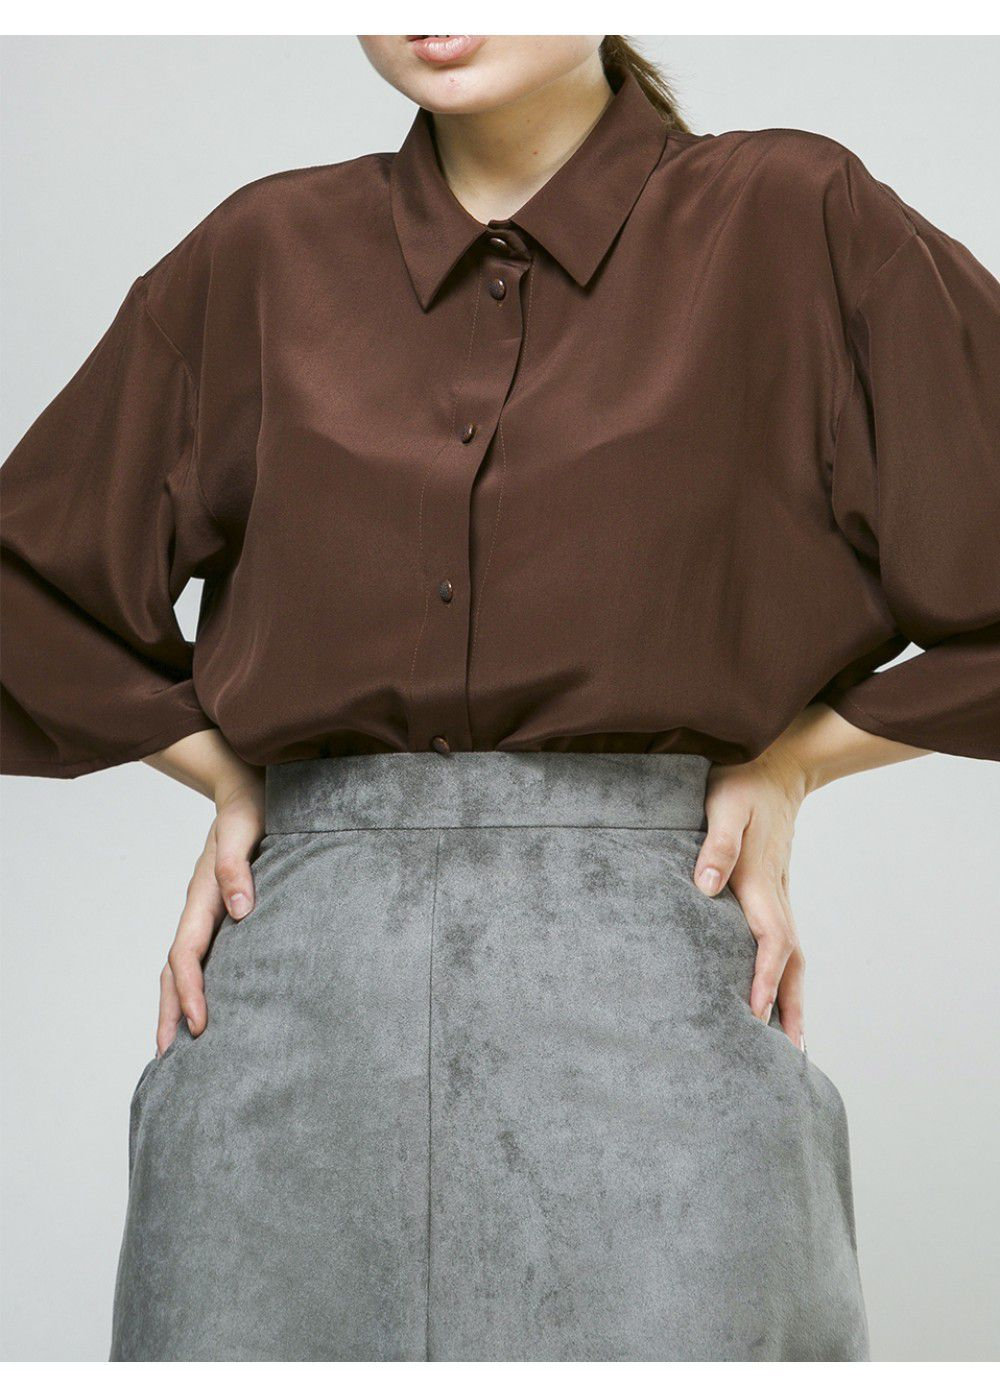 A La Russe Blouse in Chocolate